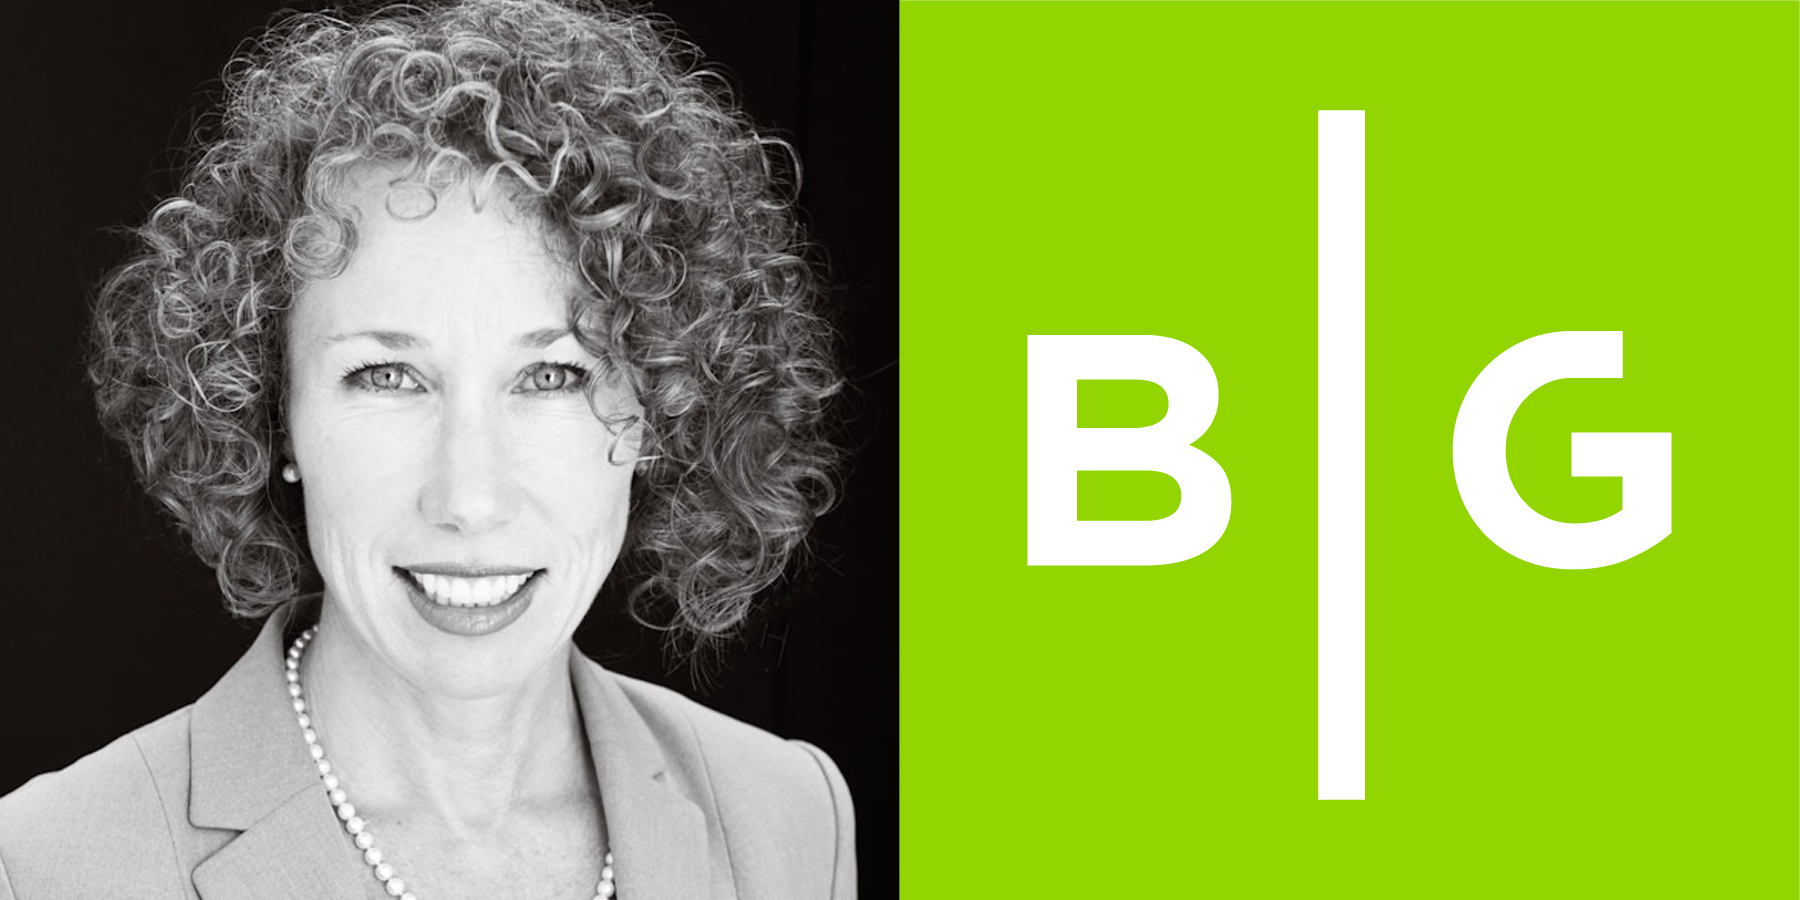 Image of Lisa Goodrich paired with the B|G logo